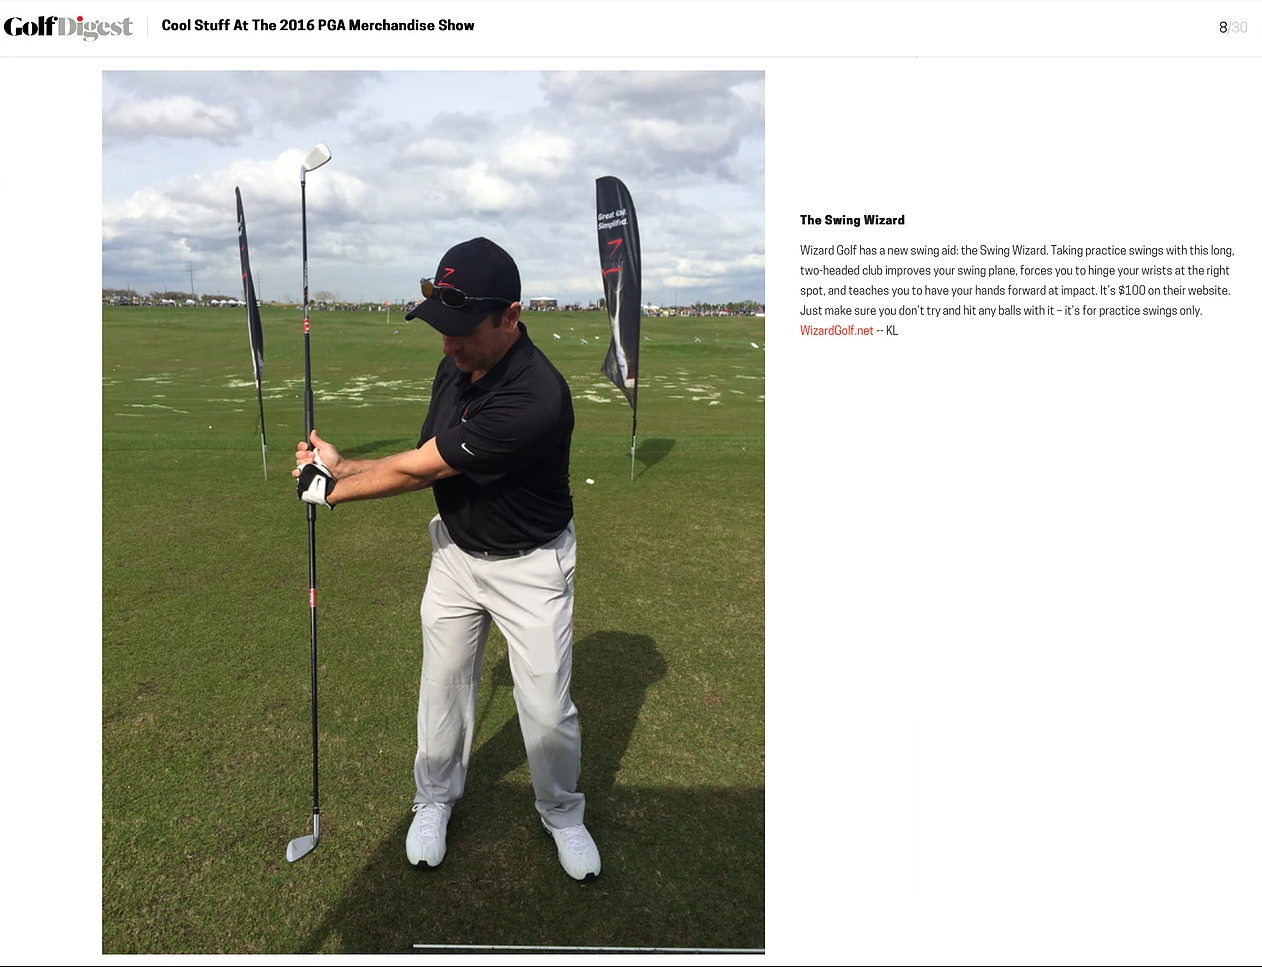 Golf Digest Swing Wizard 2016 PGA Show